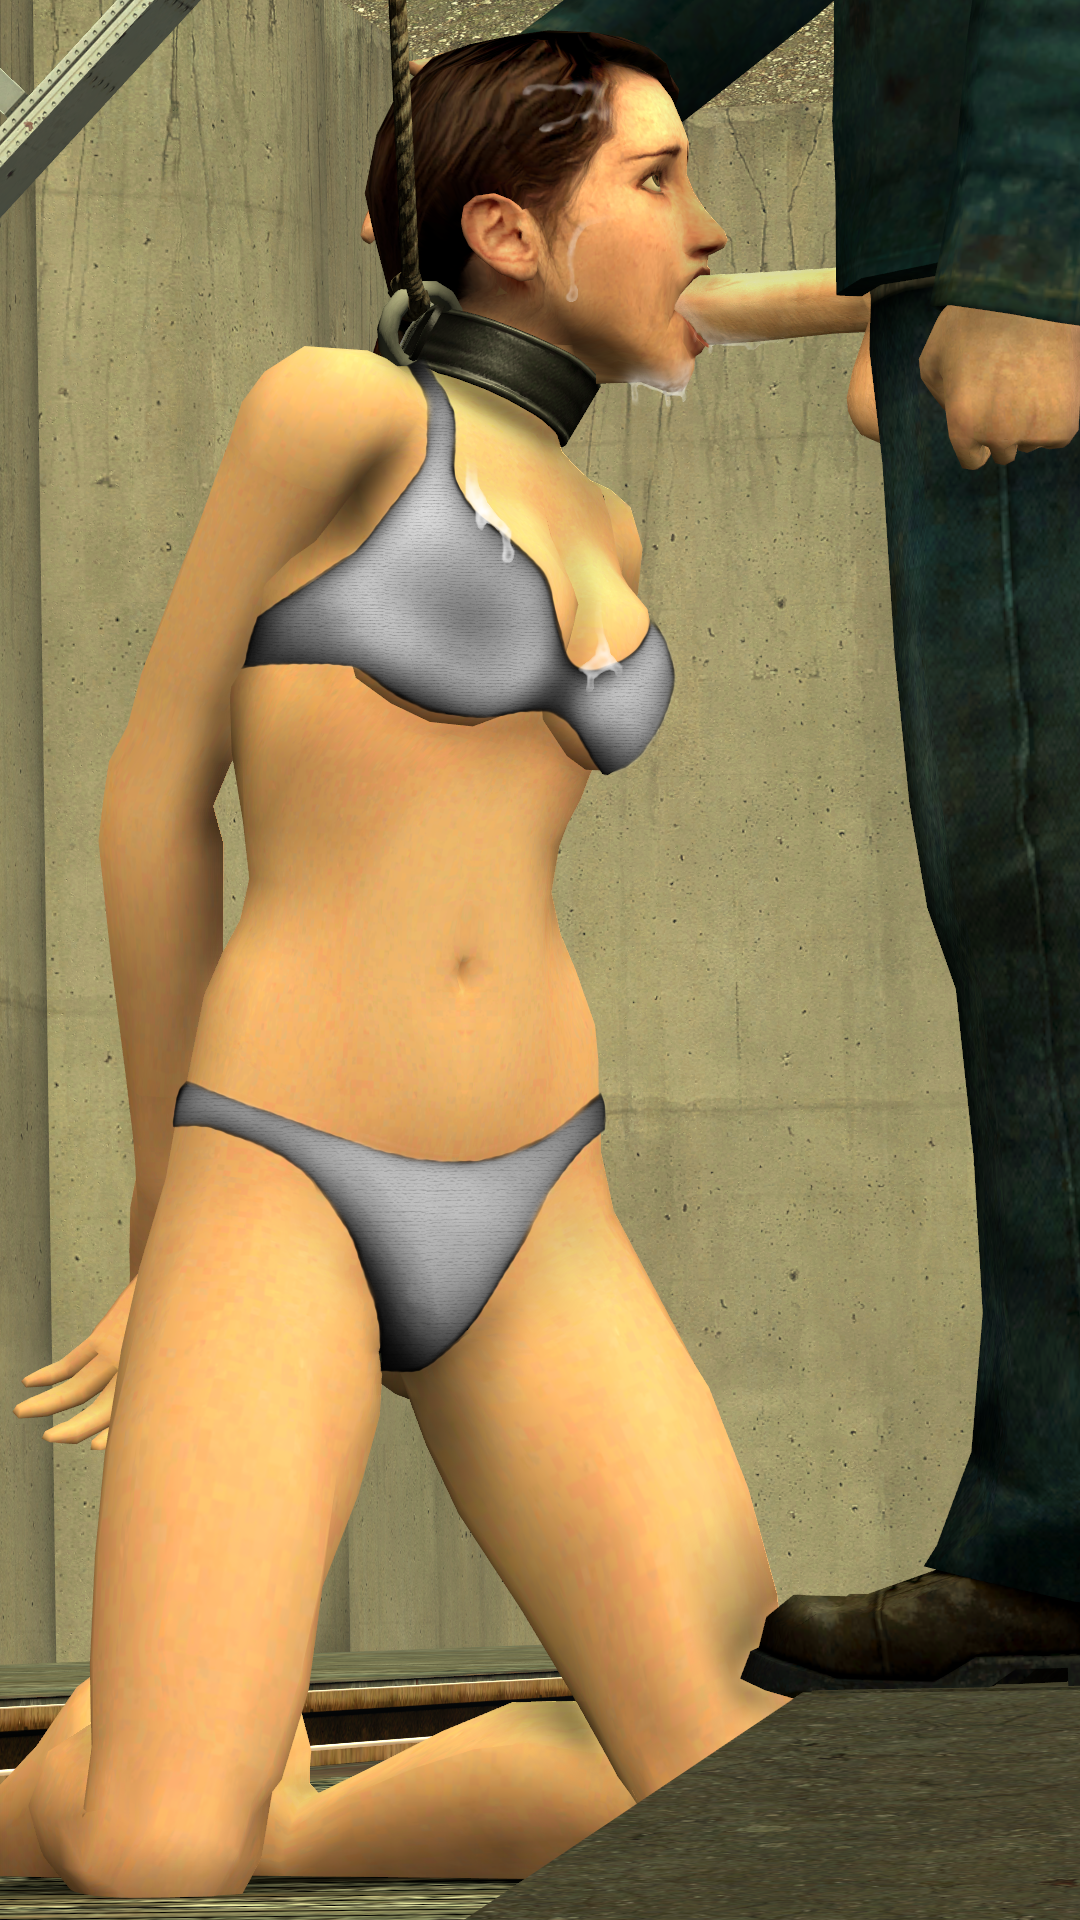 Half-life 2 citizen porn hentay picture